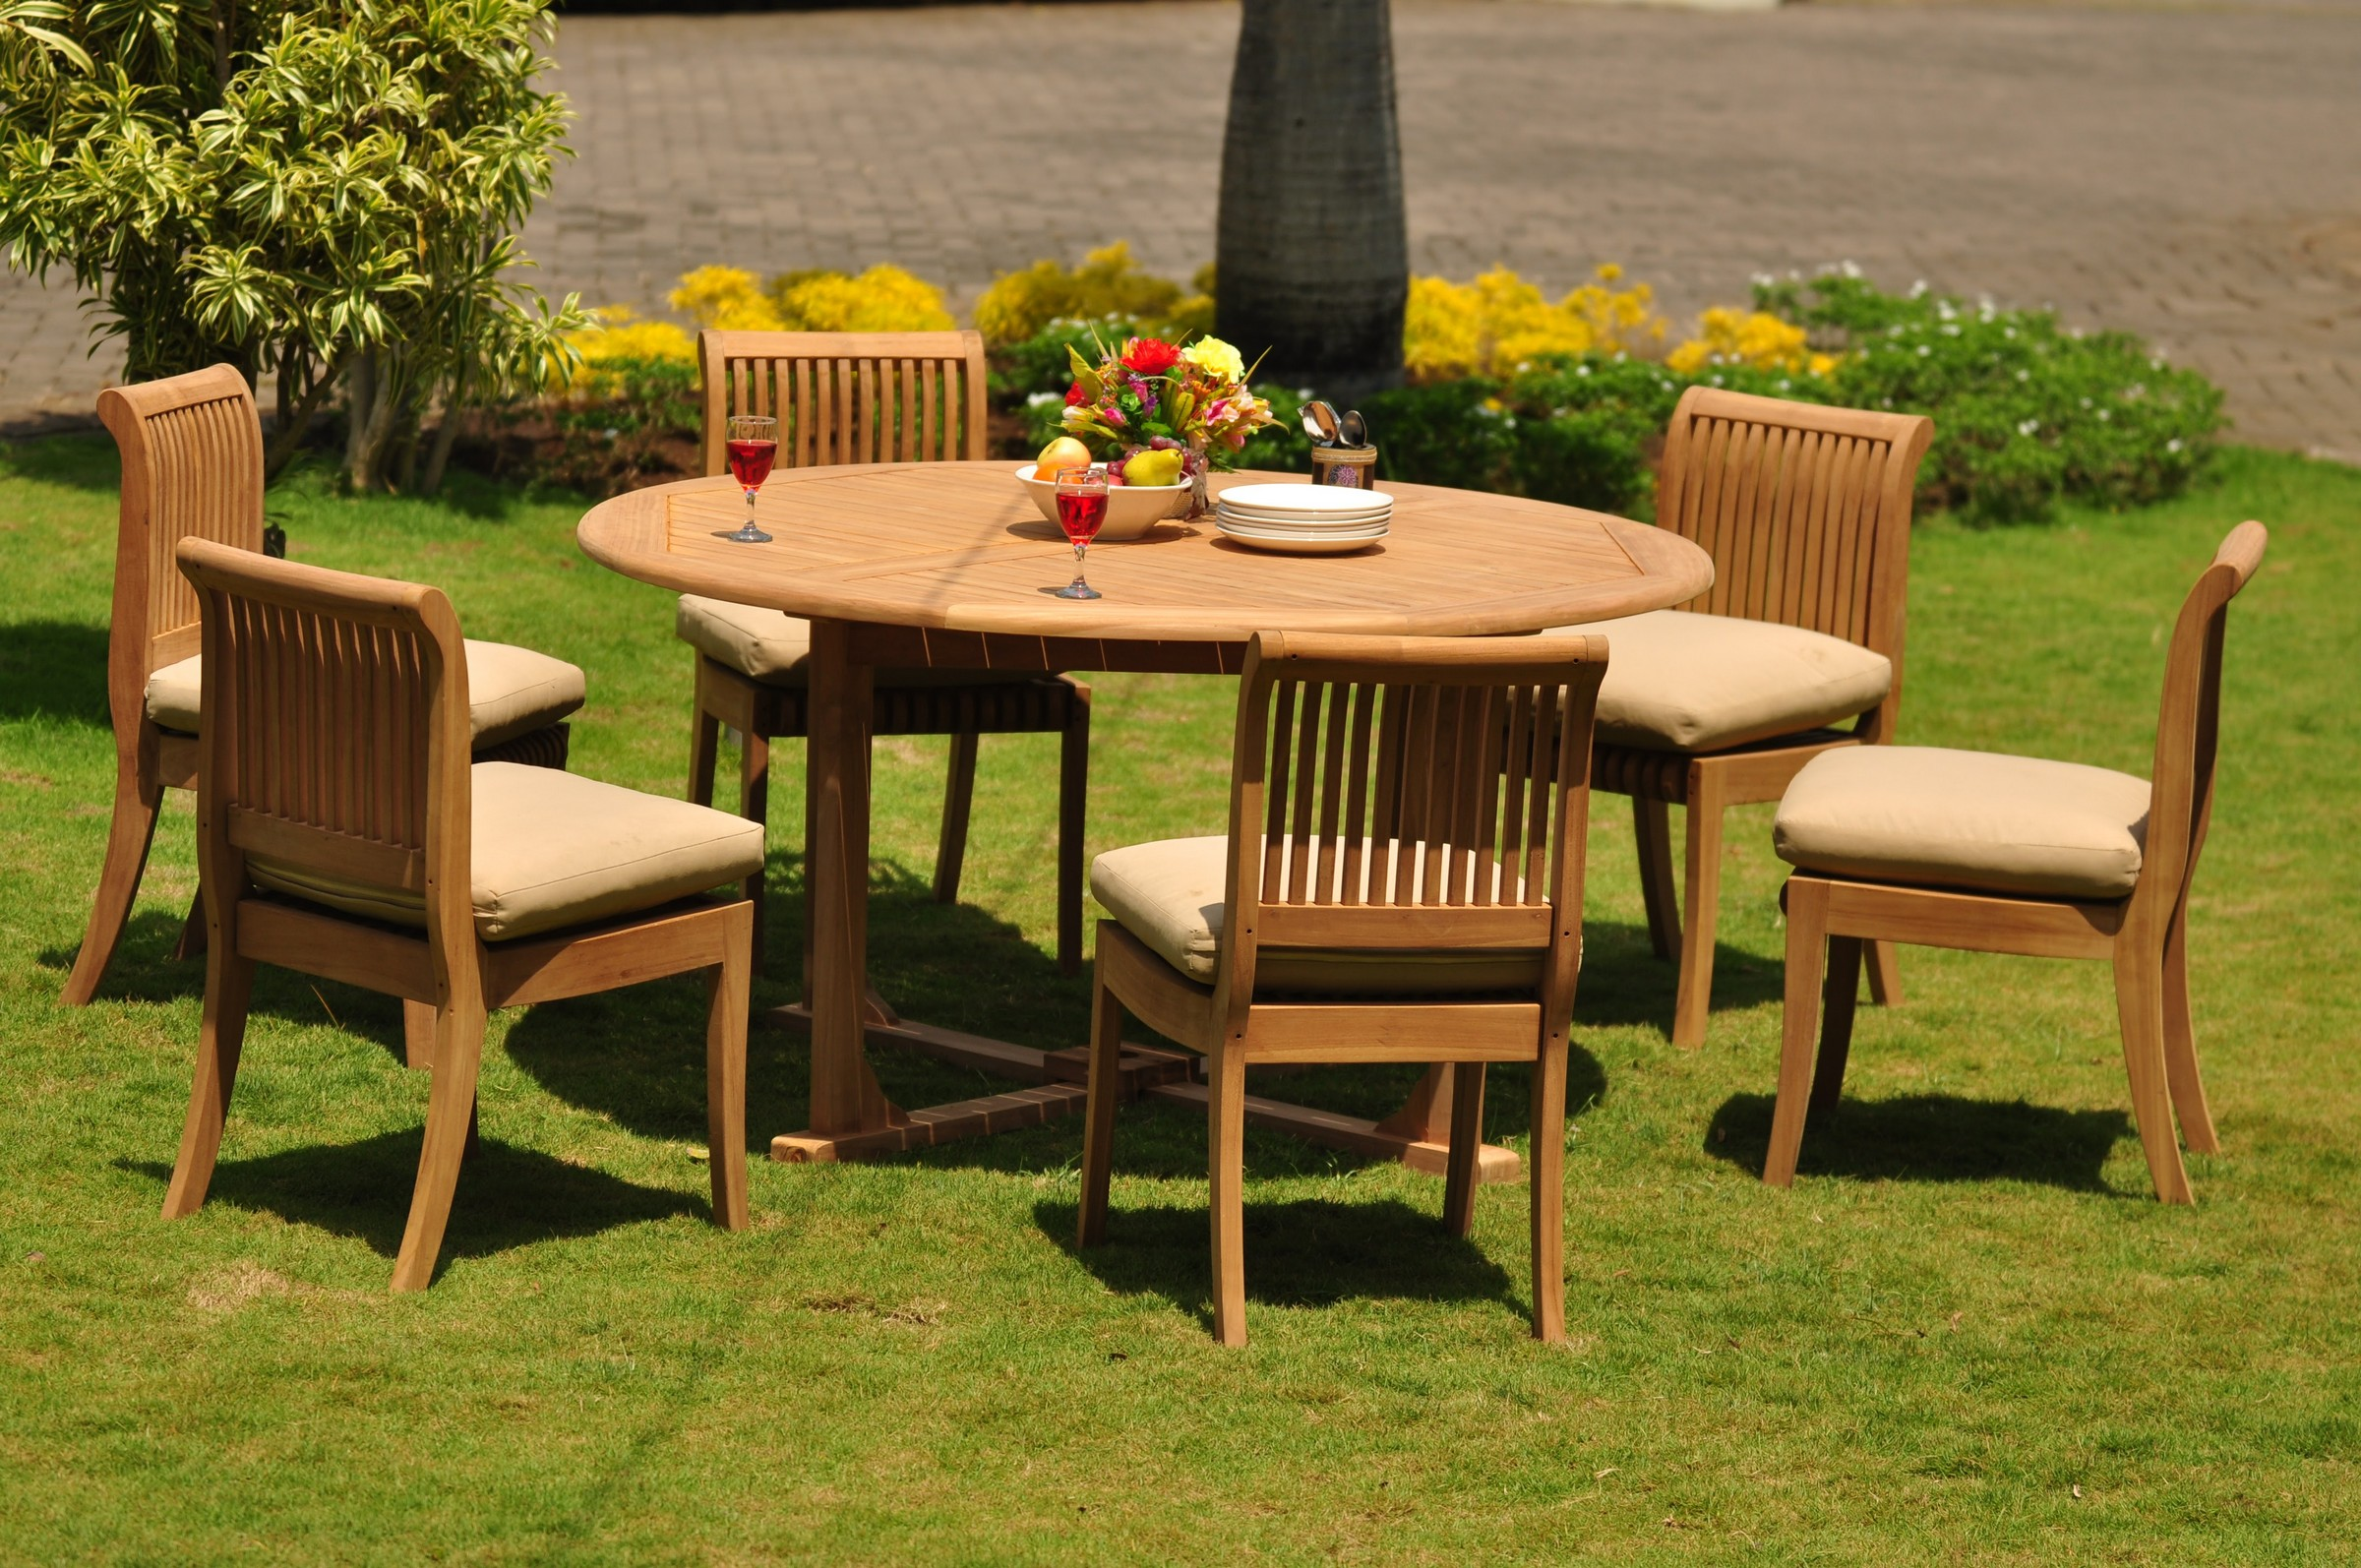 Teak Dining Set 6 Seater 7 Pc 60 Quot Round Table And 6 Giva